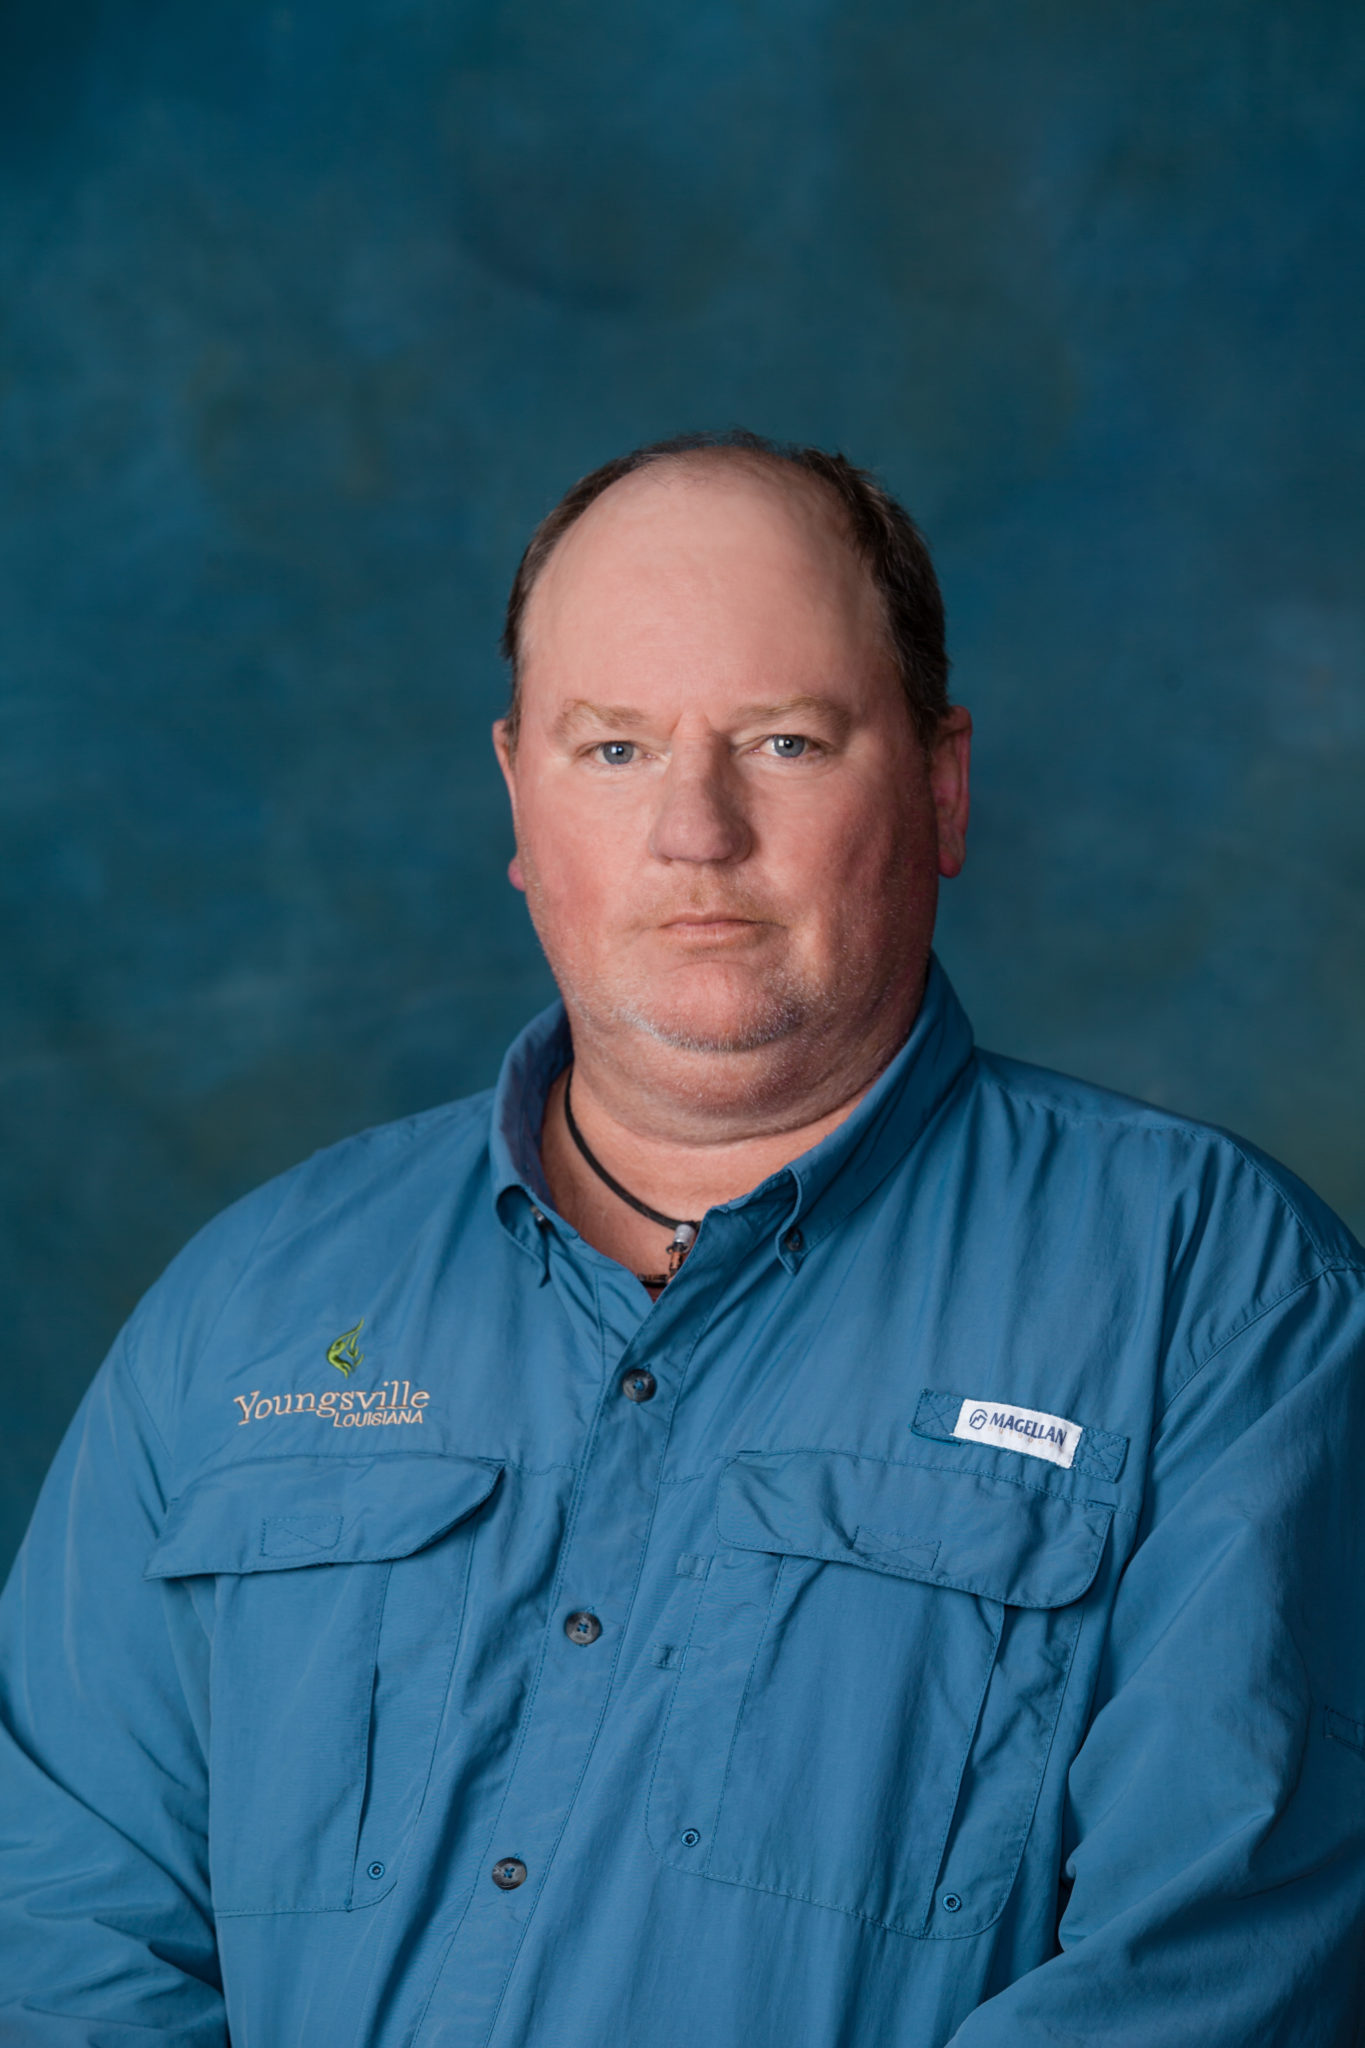 Roger Rowland - Assistant Director, Public Works